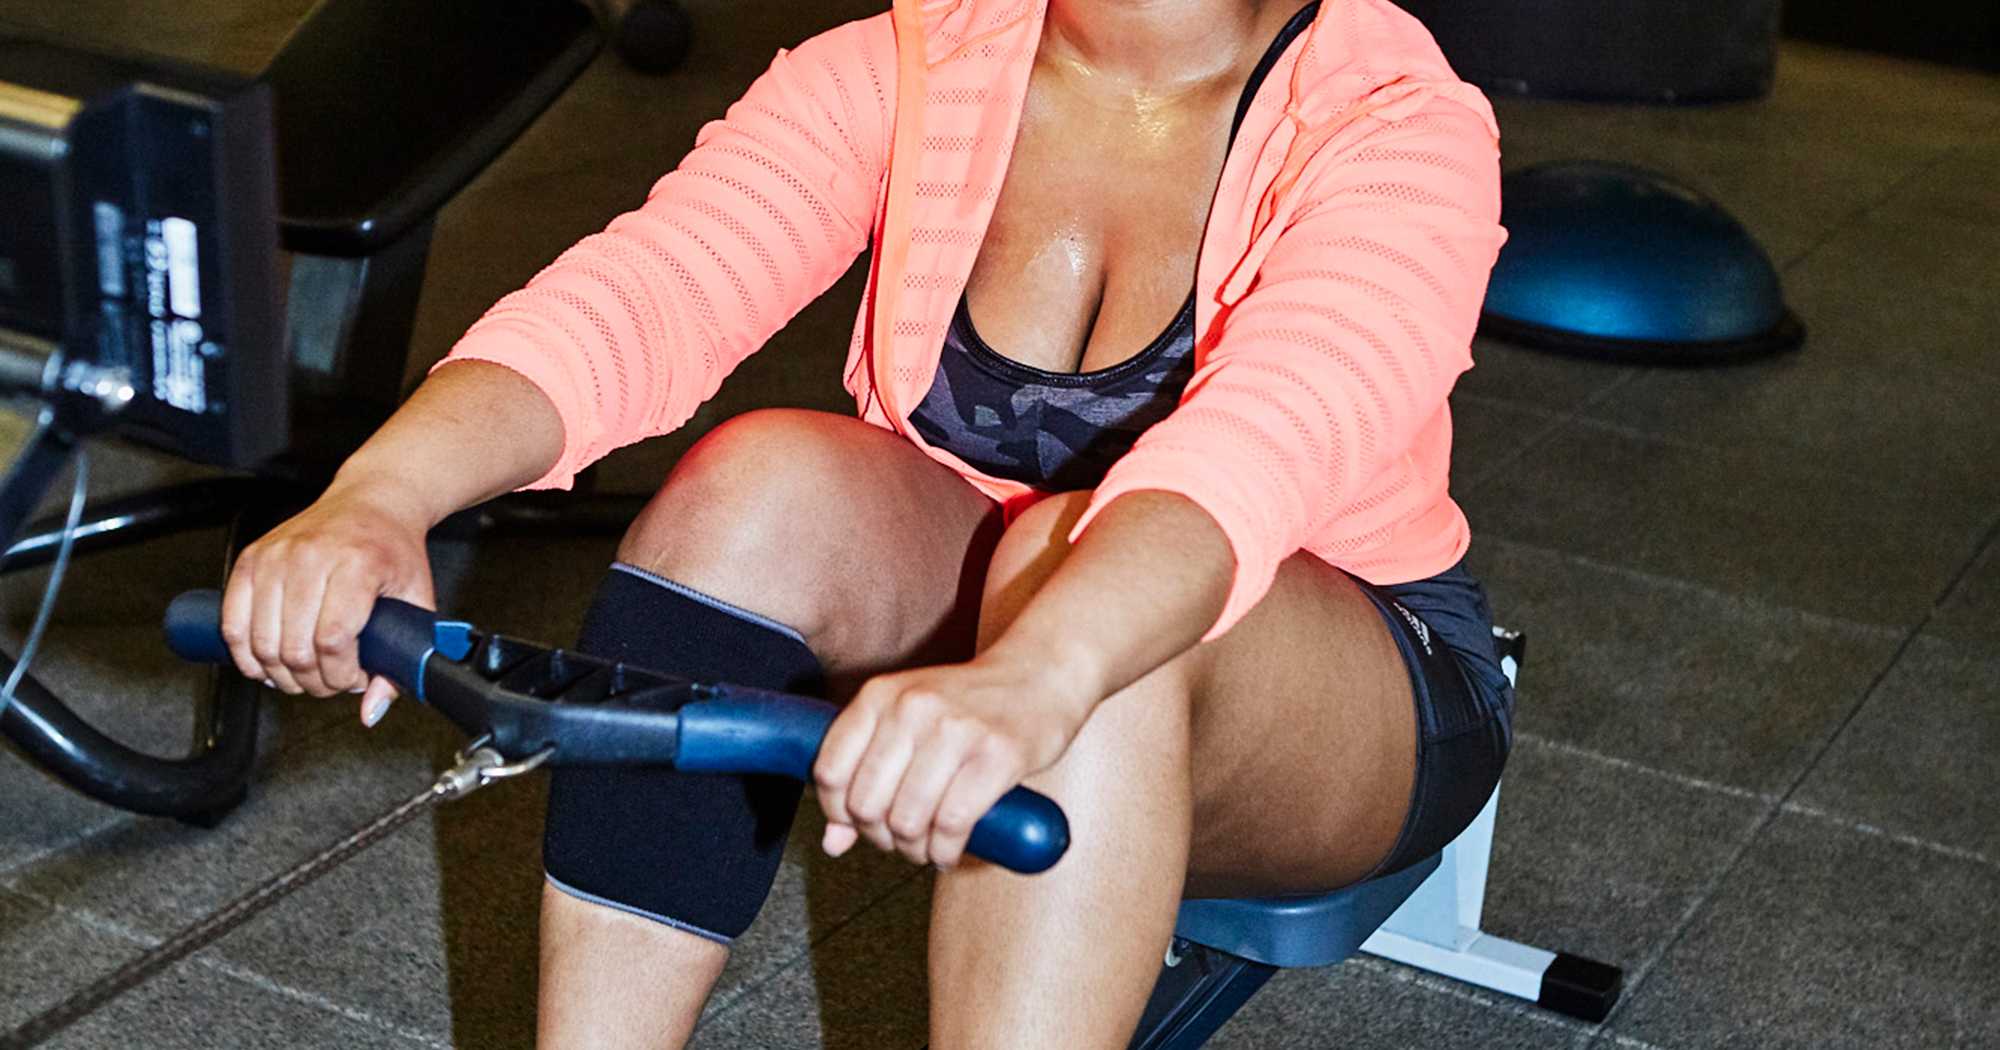 If You Hate Working Out, Just Remember These 8 Exercises